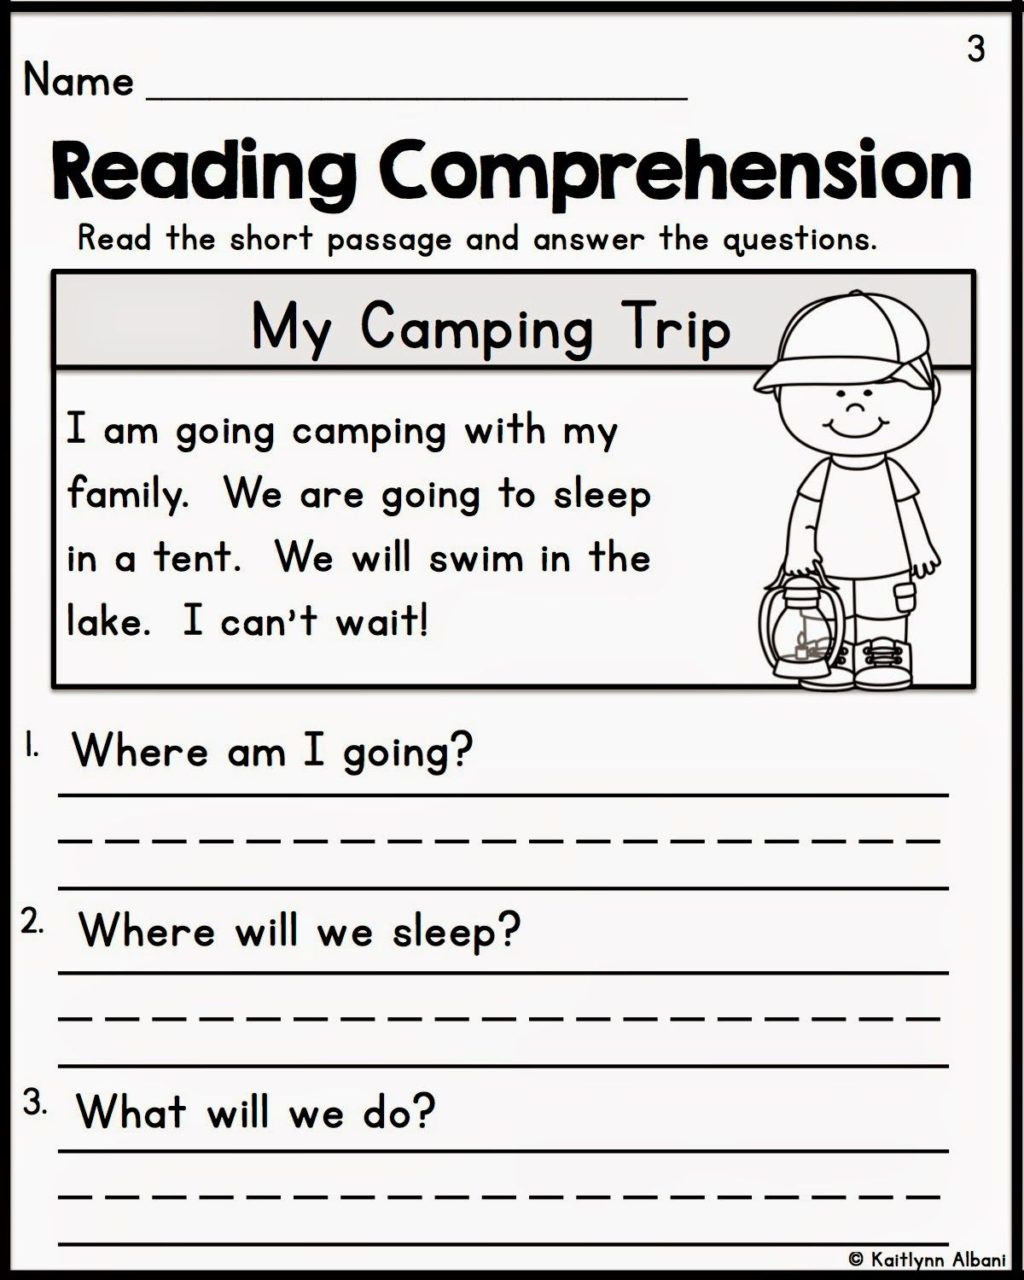 Reading Comprehension Kindergarten Worksheets Free Worksheet Printable Kindergarten Worksheets Reading